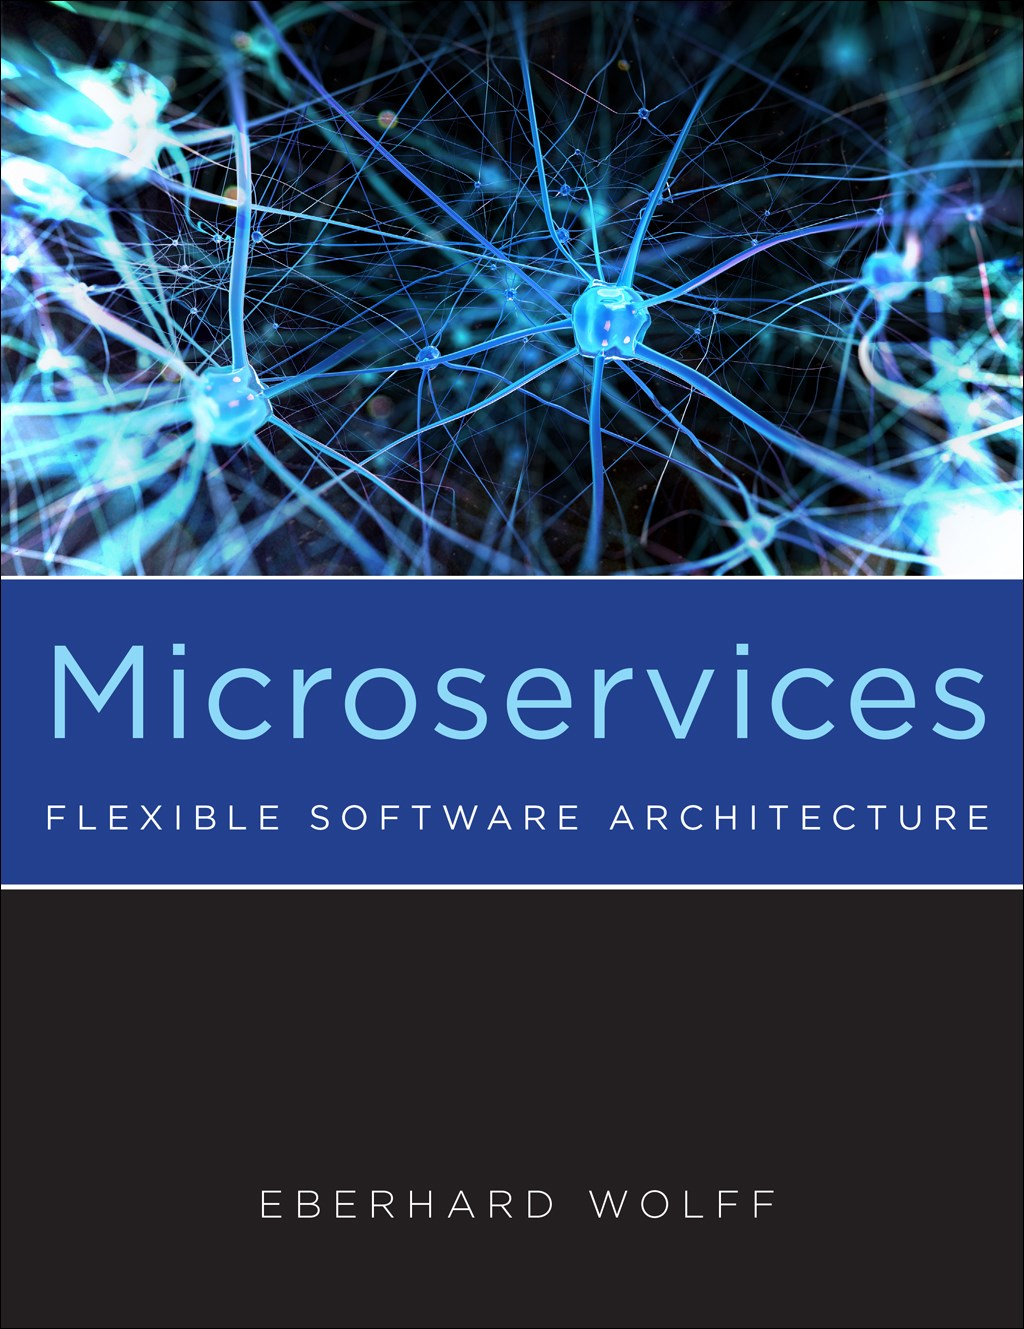 Microservices: Flexible Software Architecture